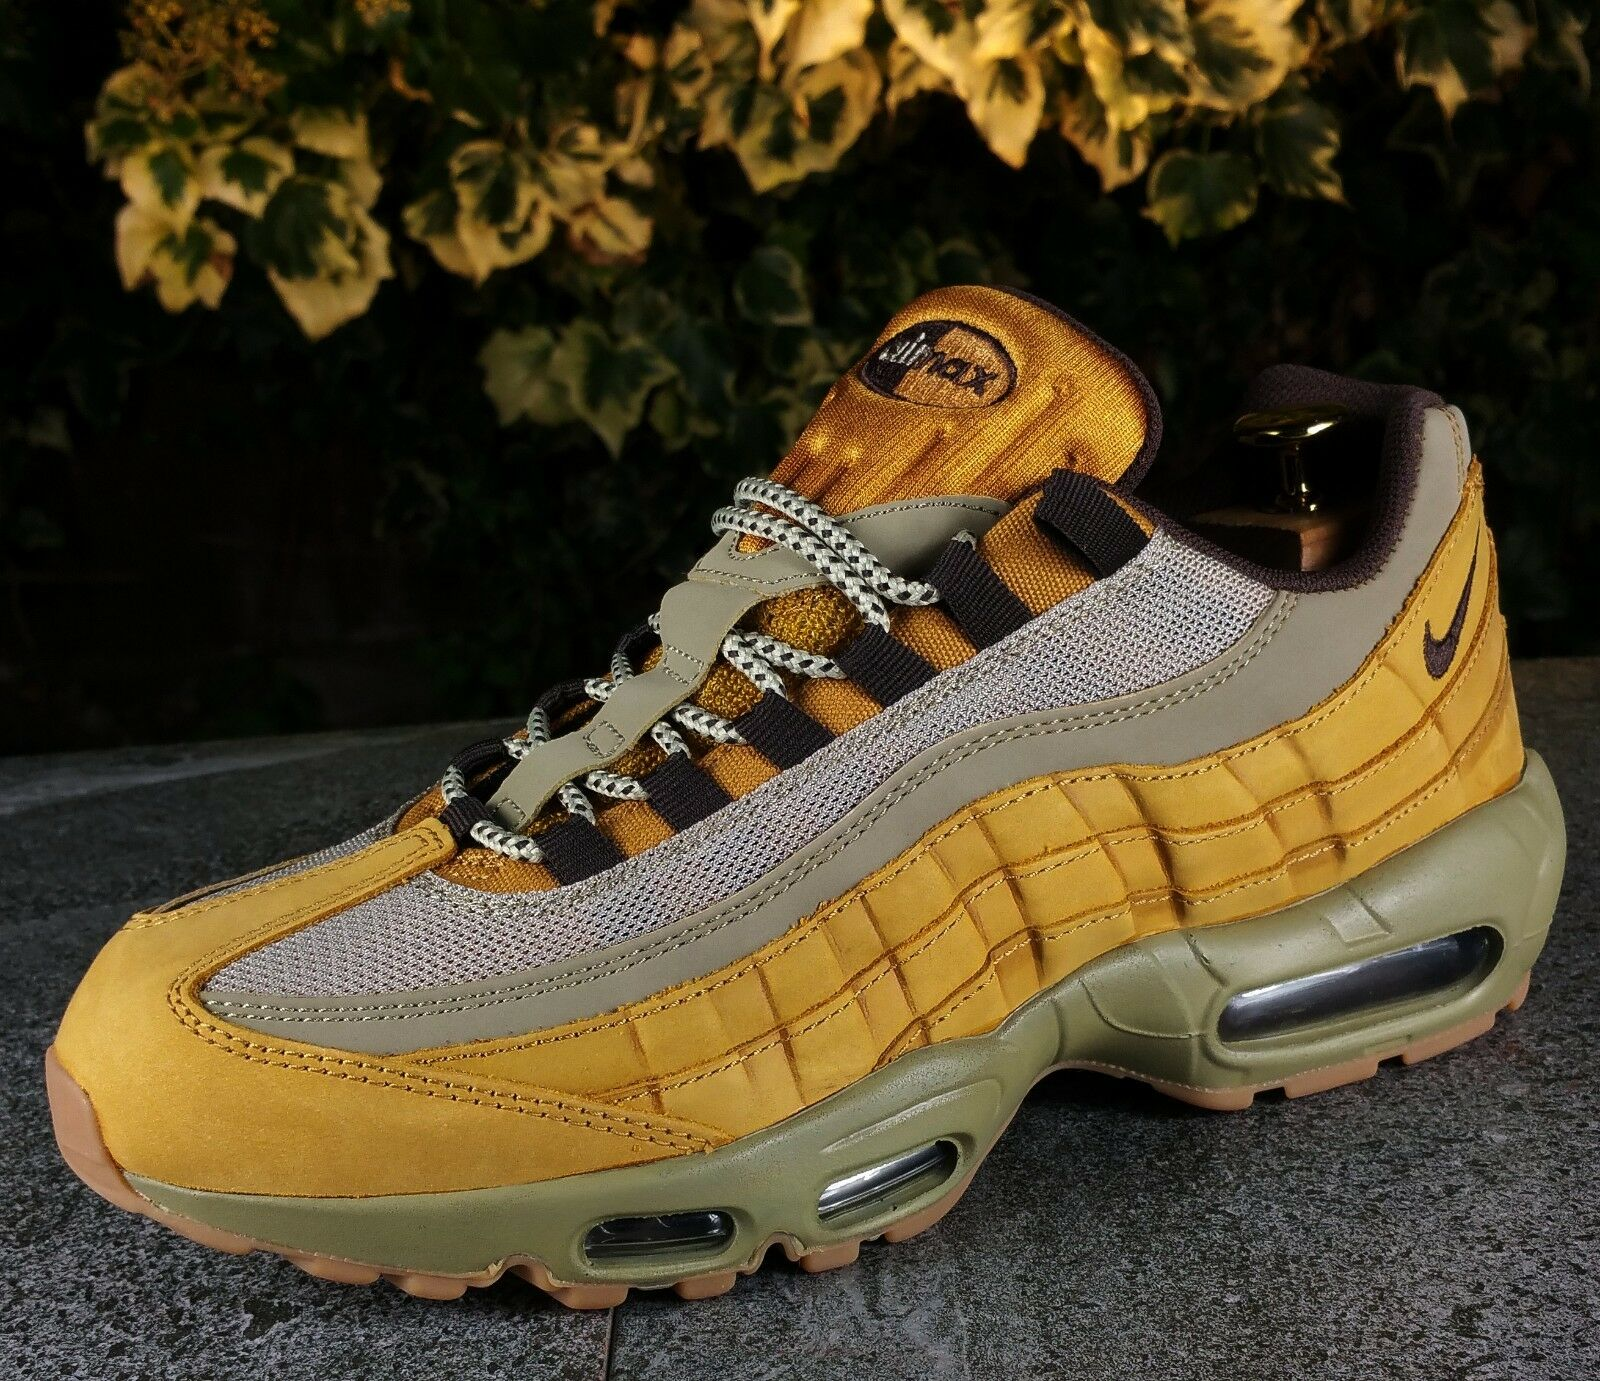 BNWB Genuine Nike Air Max 95 Winter Premium ®   Wheat Pack   Trainers UK Size 7